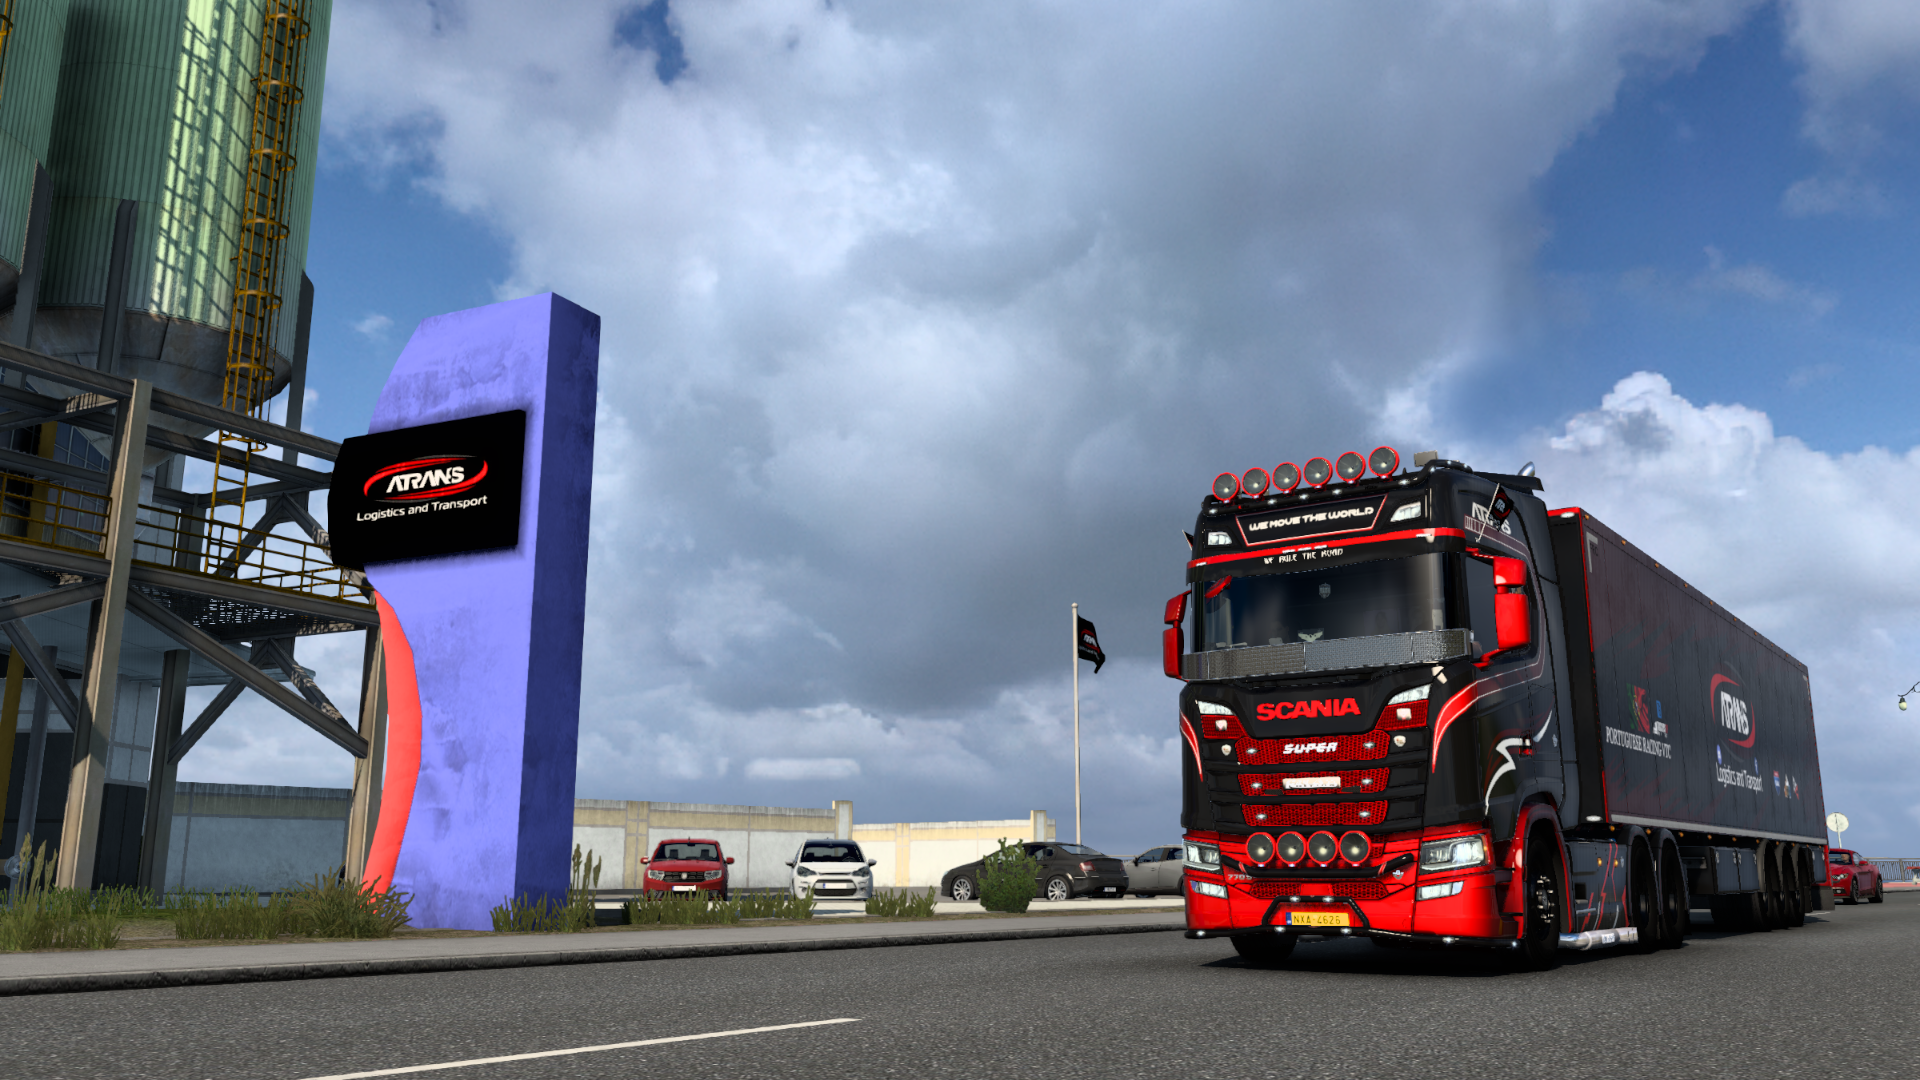 ets2_20211006_184349_00.png